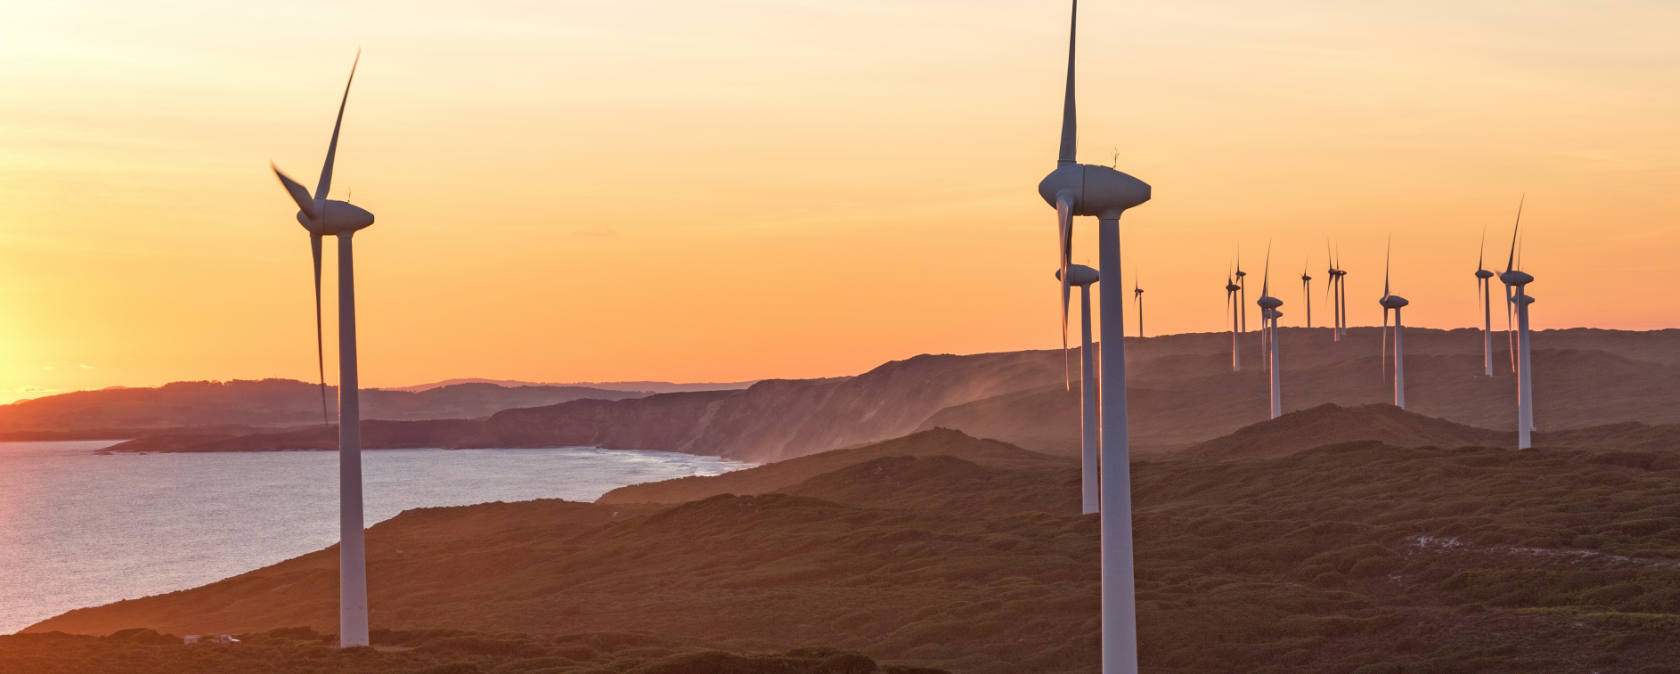 A wind farm overlooks a body of water at sunset